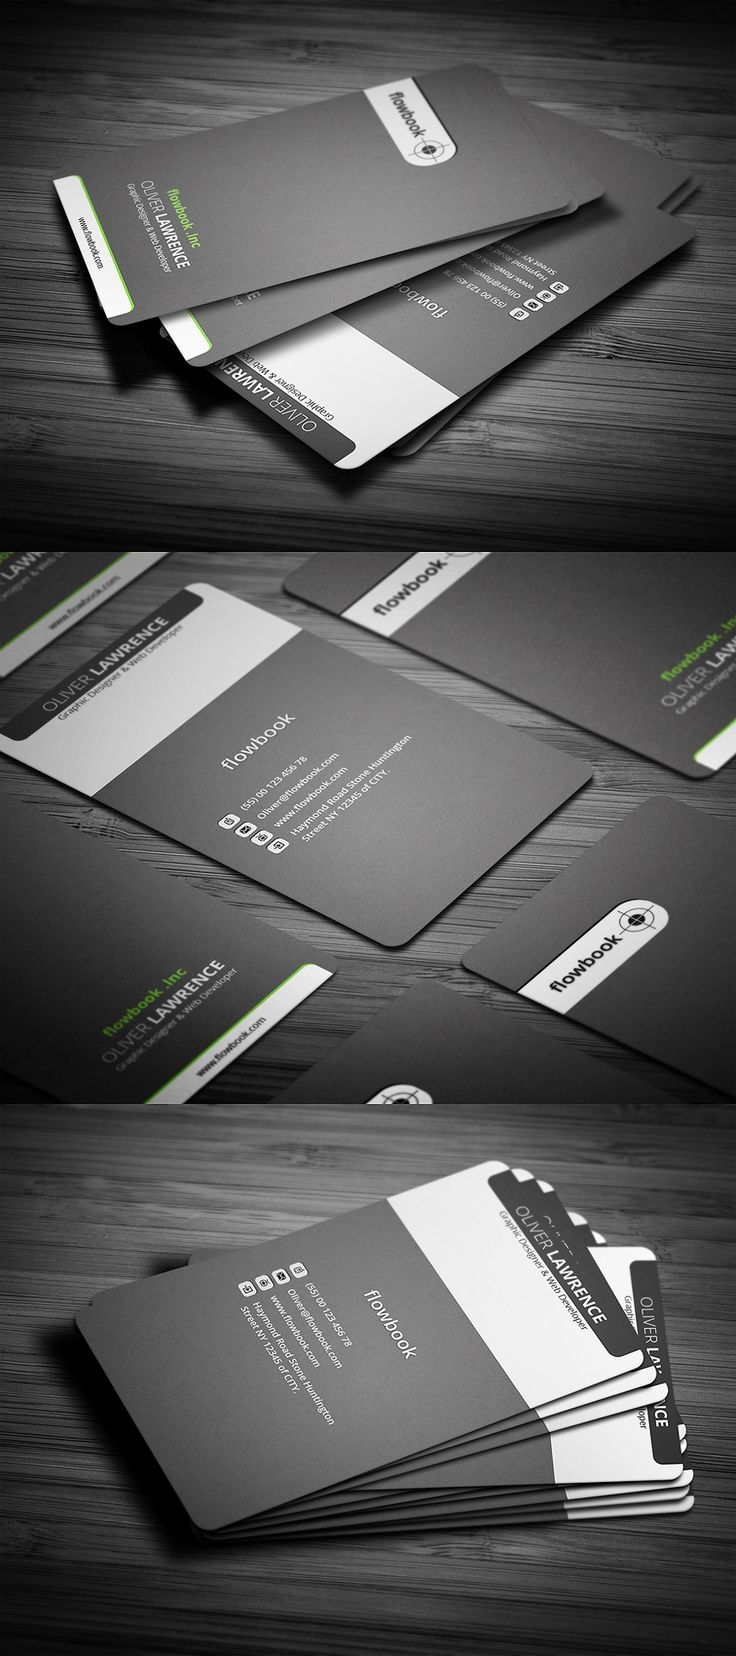 Modern, classy, techy, clean, and the design probably wouldn't go out of style too quickly --- business cards premium - http://www.bce-online.com/en/